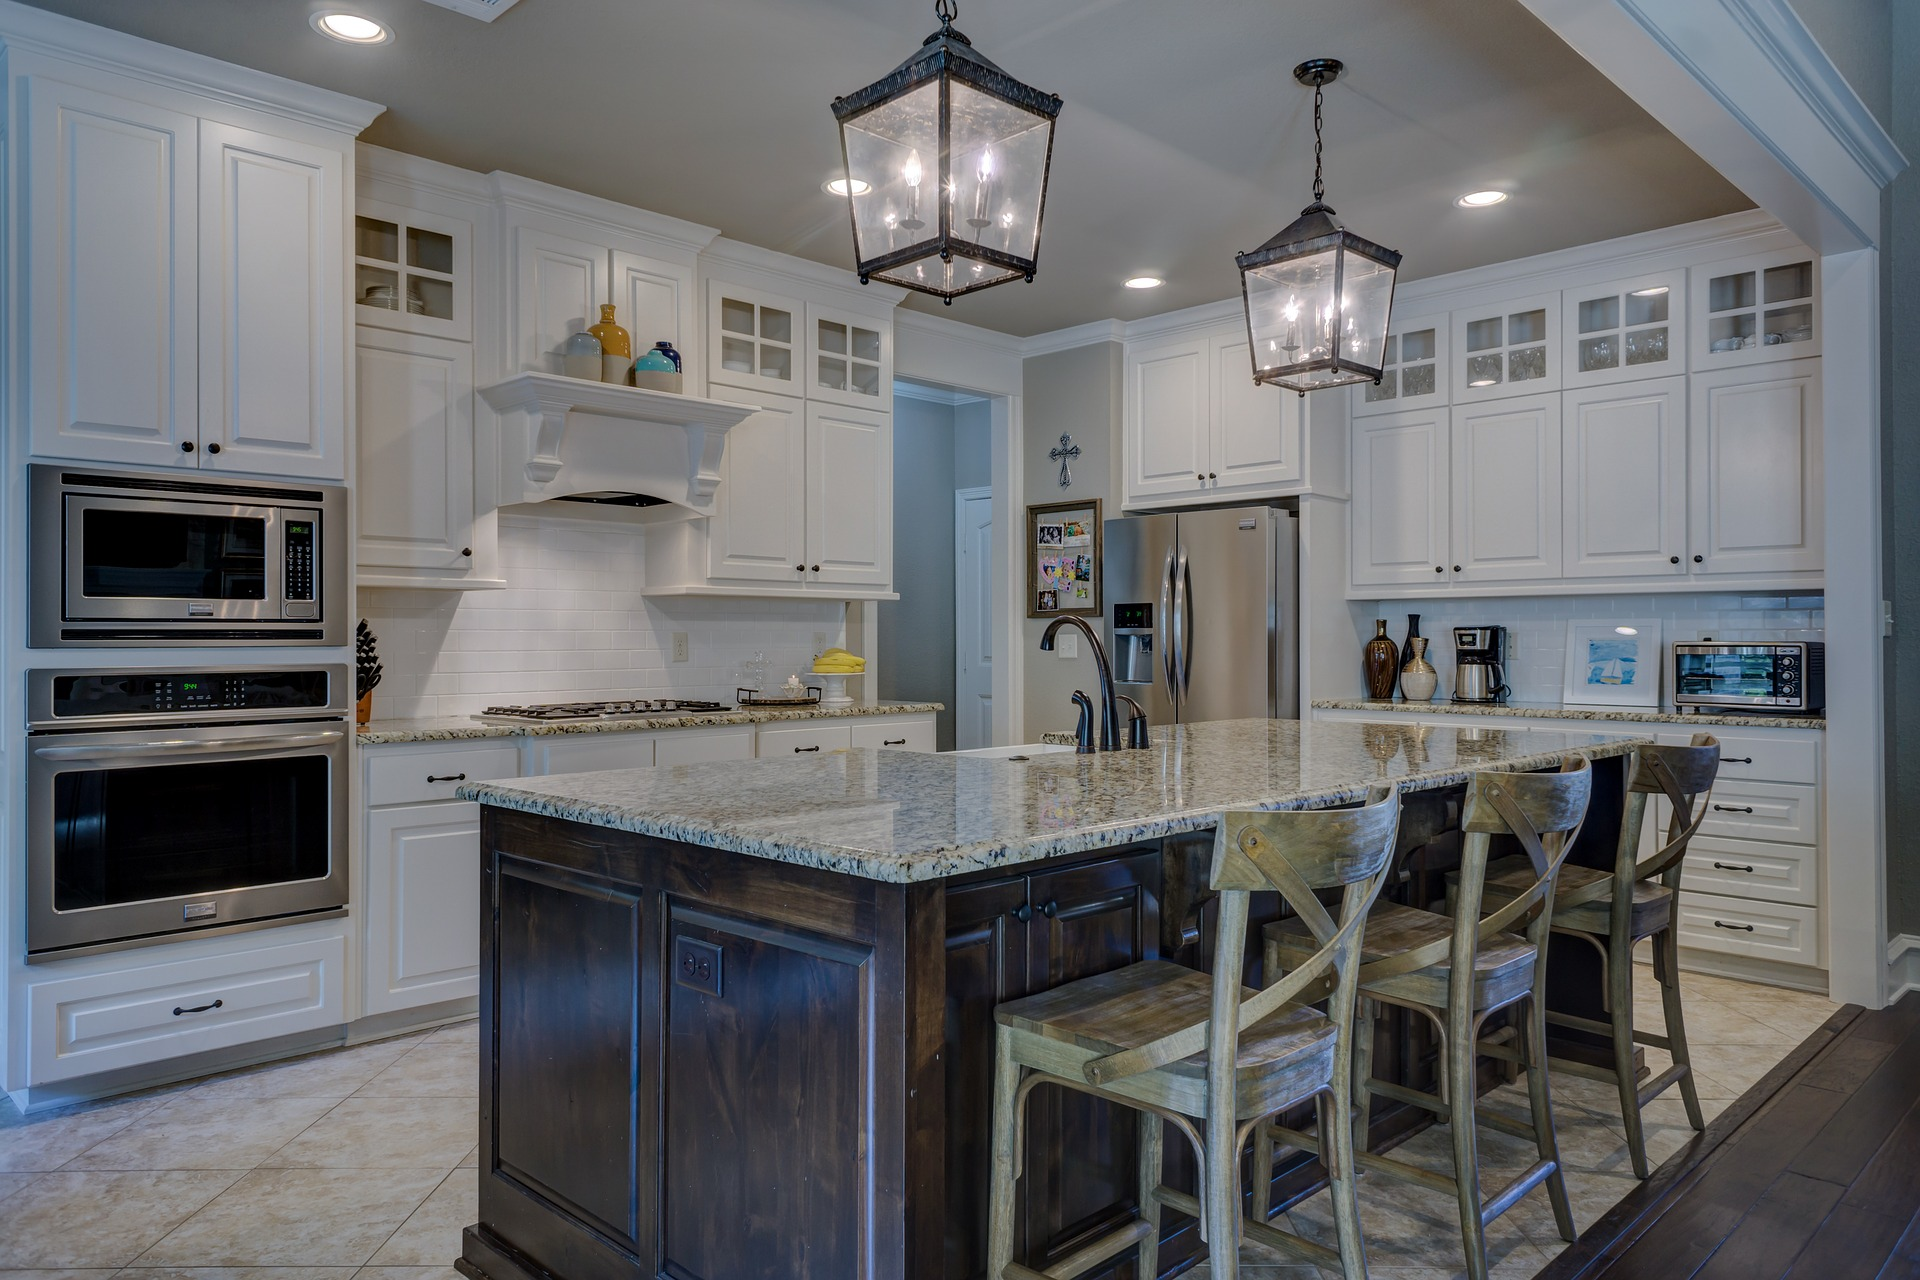 Kitchen Remodeling Services in New Jersey